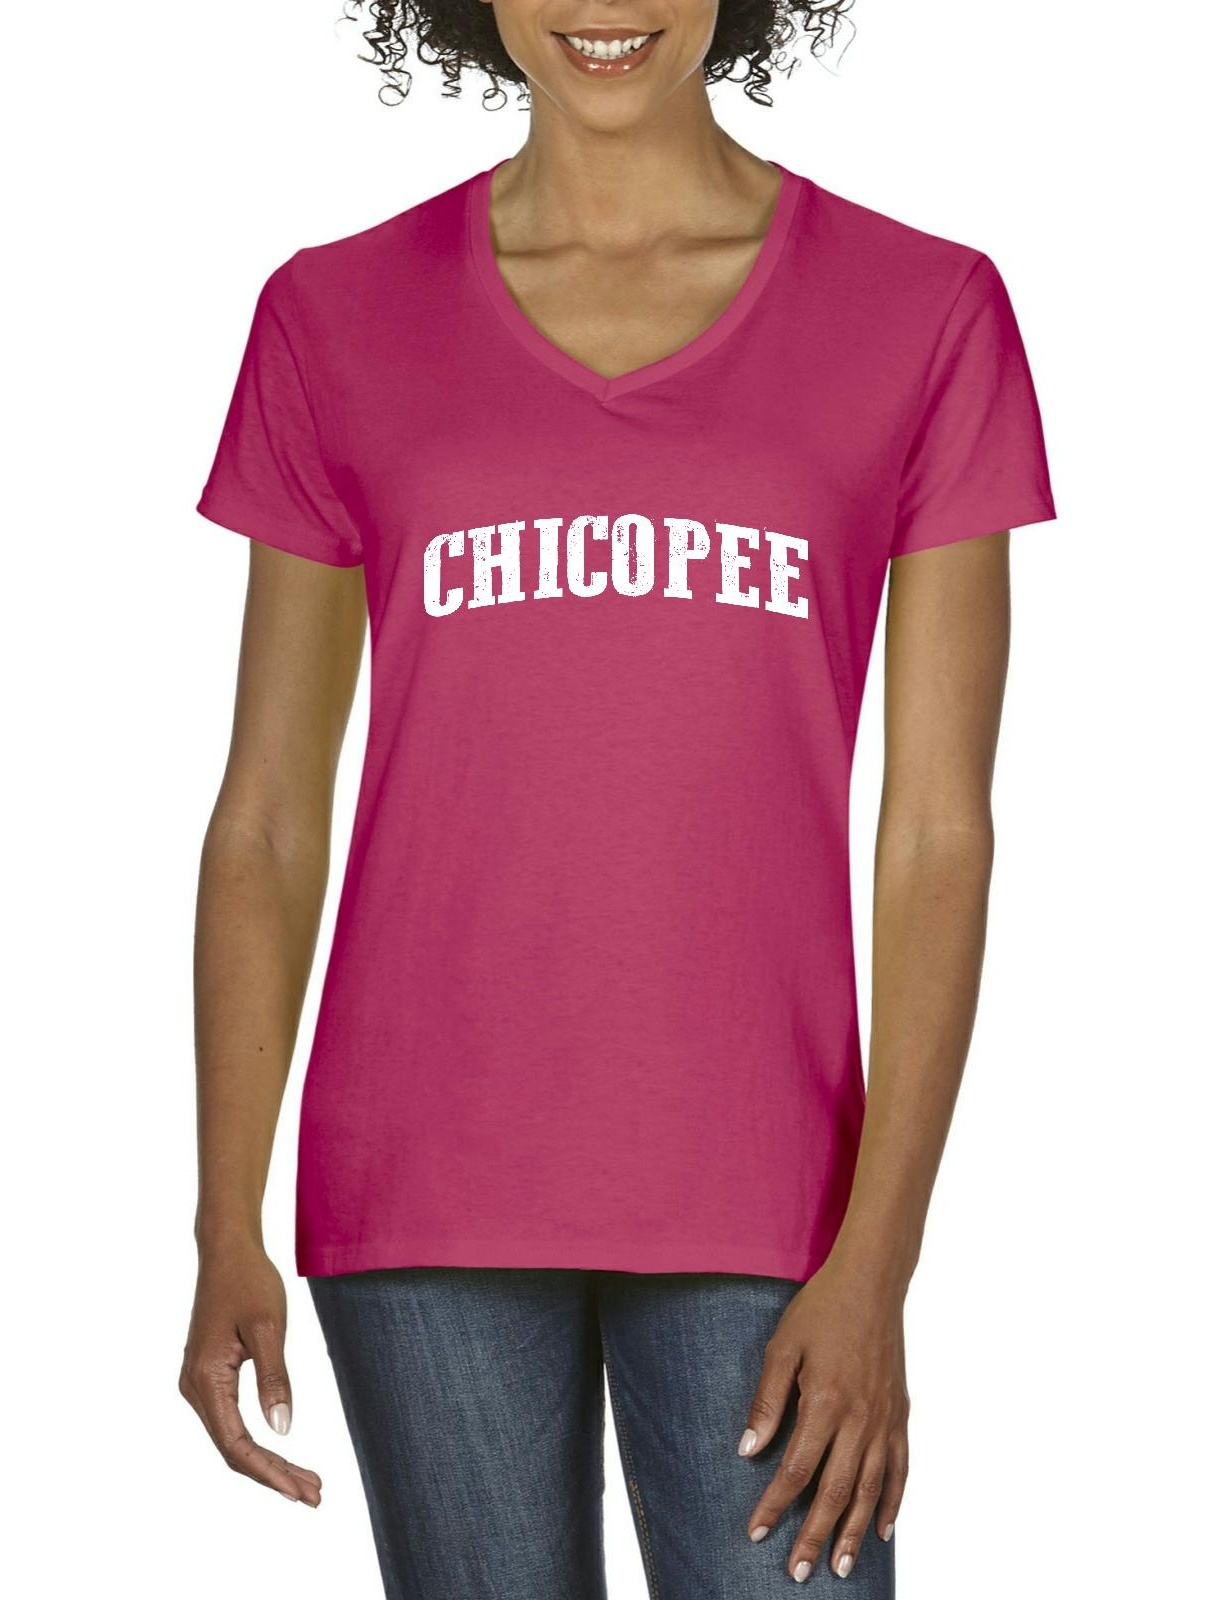 chicopee massachusetts t shirt home of mit cambridge and harvard crimson artix womens shirts v neck walmartcom